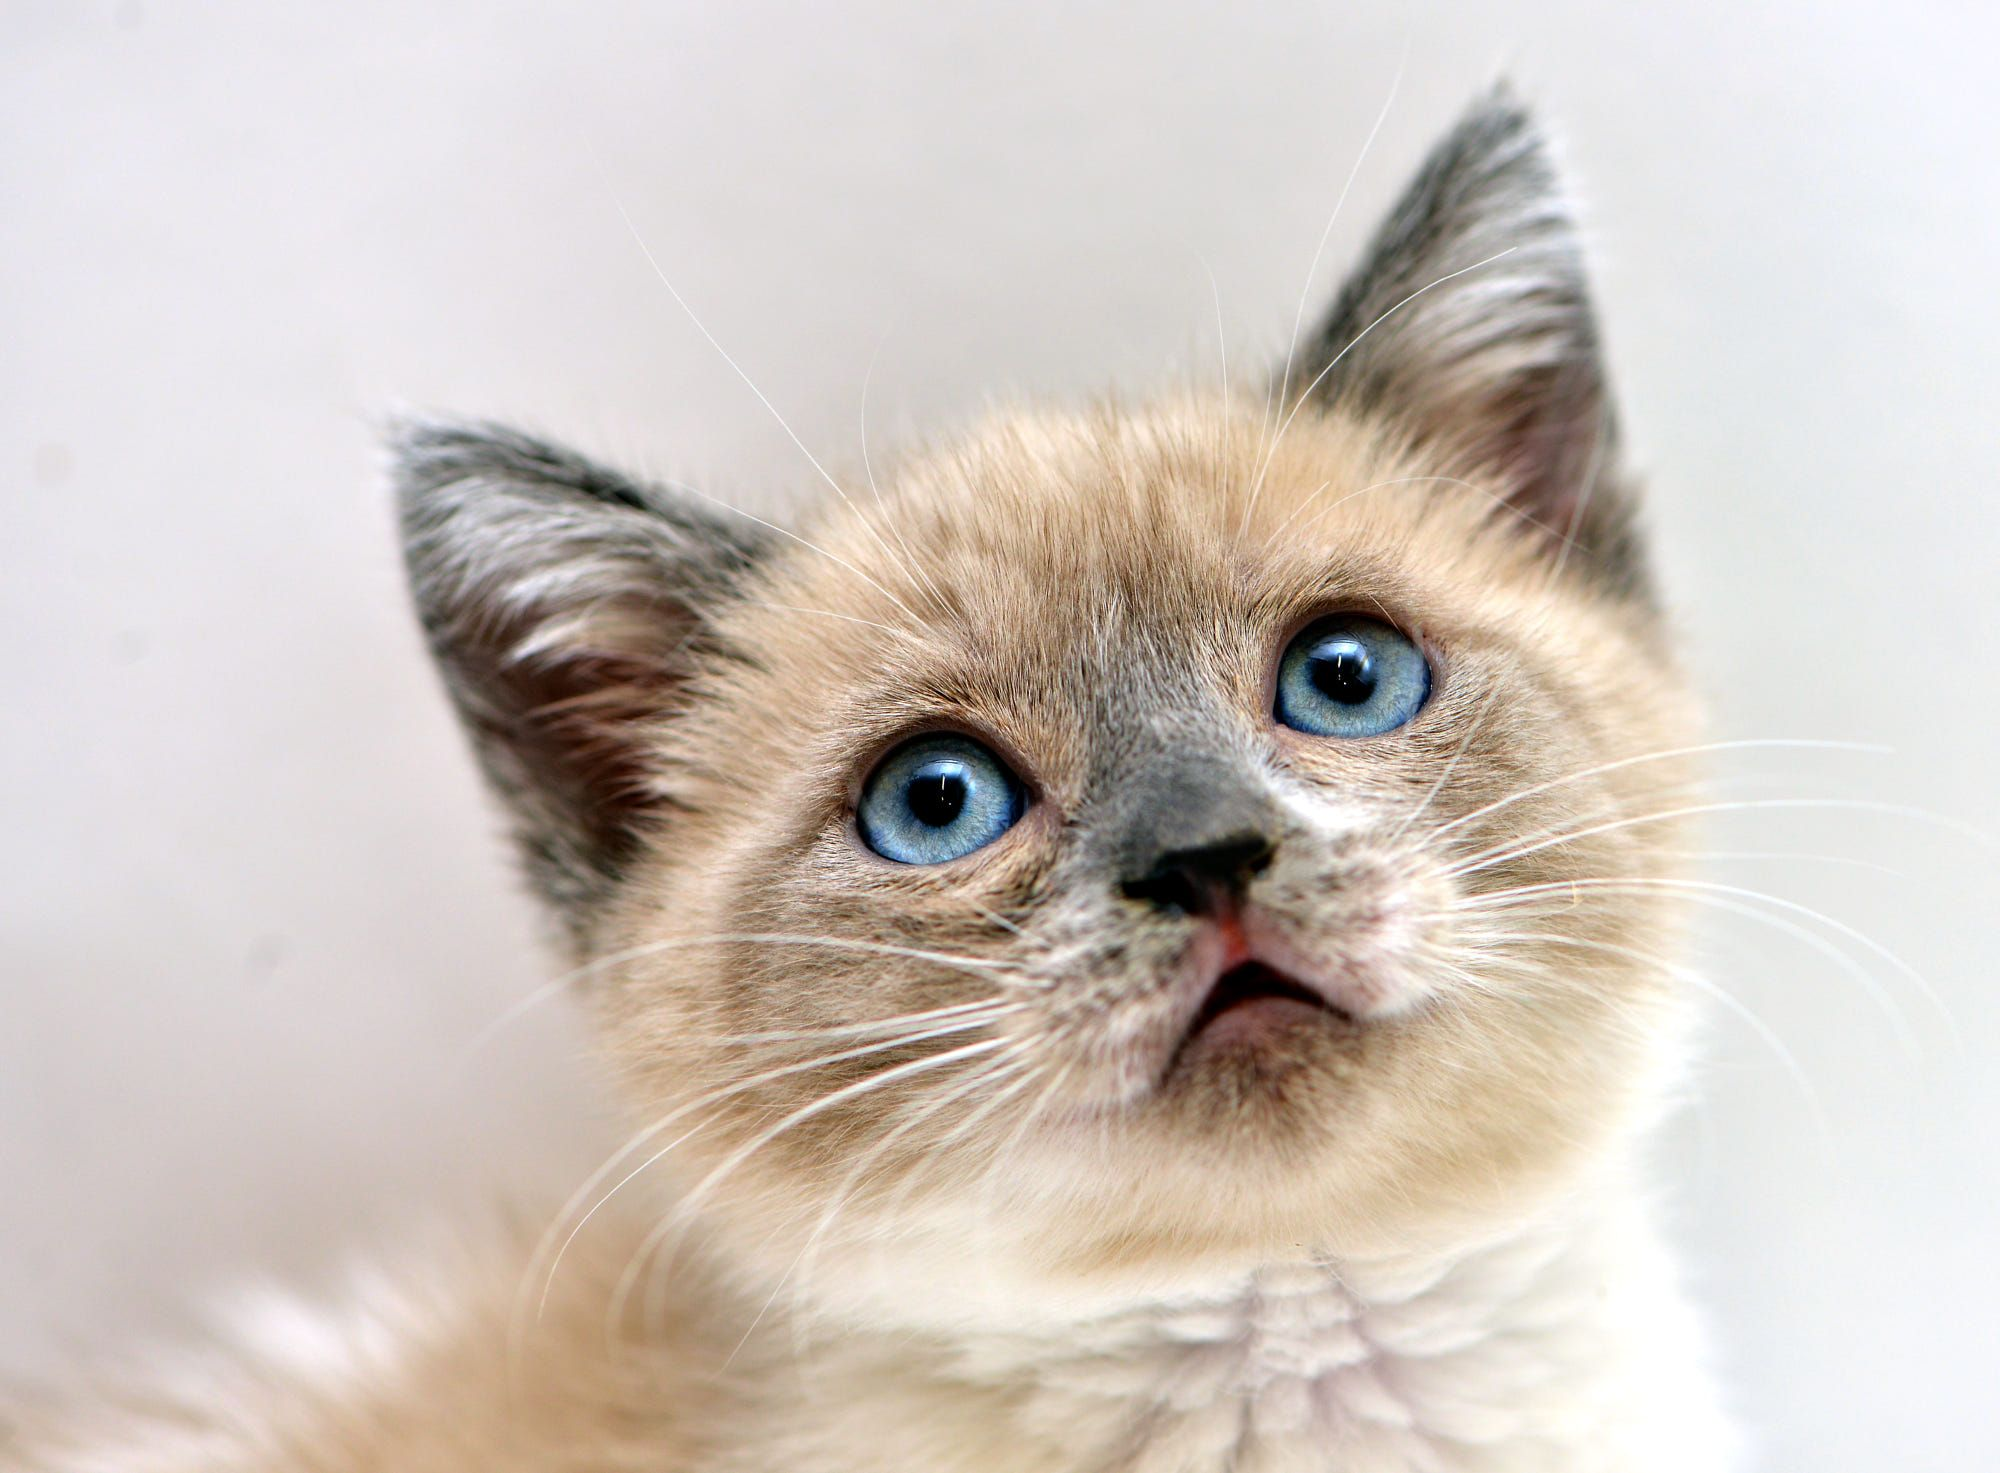 An Adorable Lilac Point Siamese Kitten About 5 Weeks Old Cute Cats Kittens Cutest Cute Animals